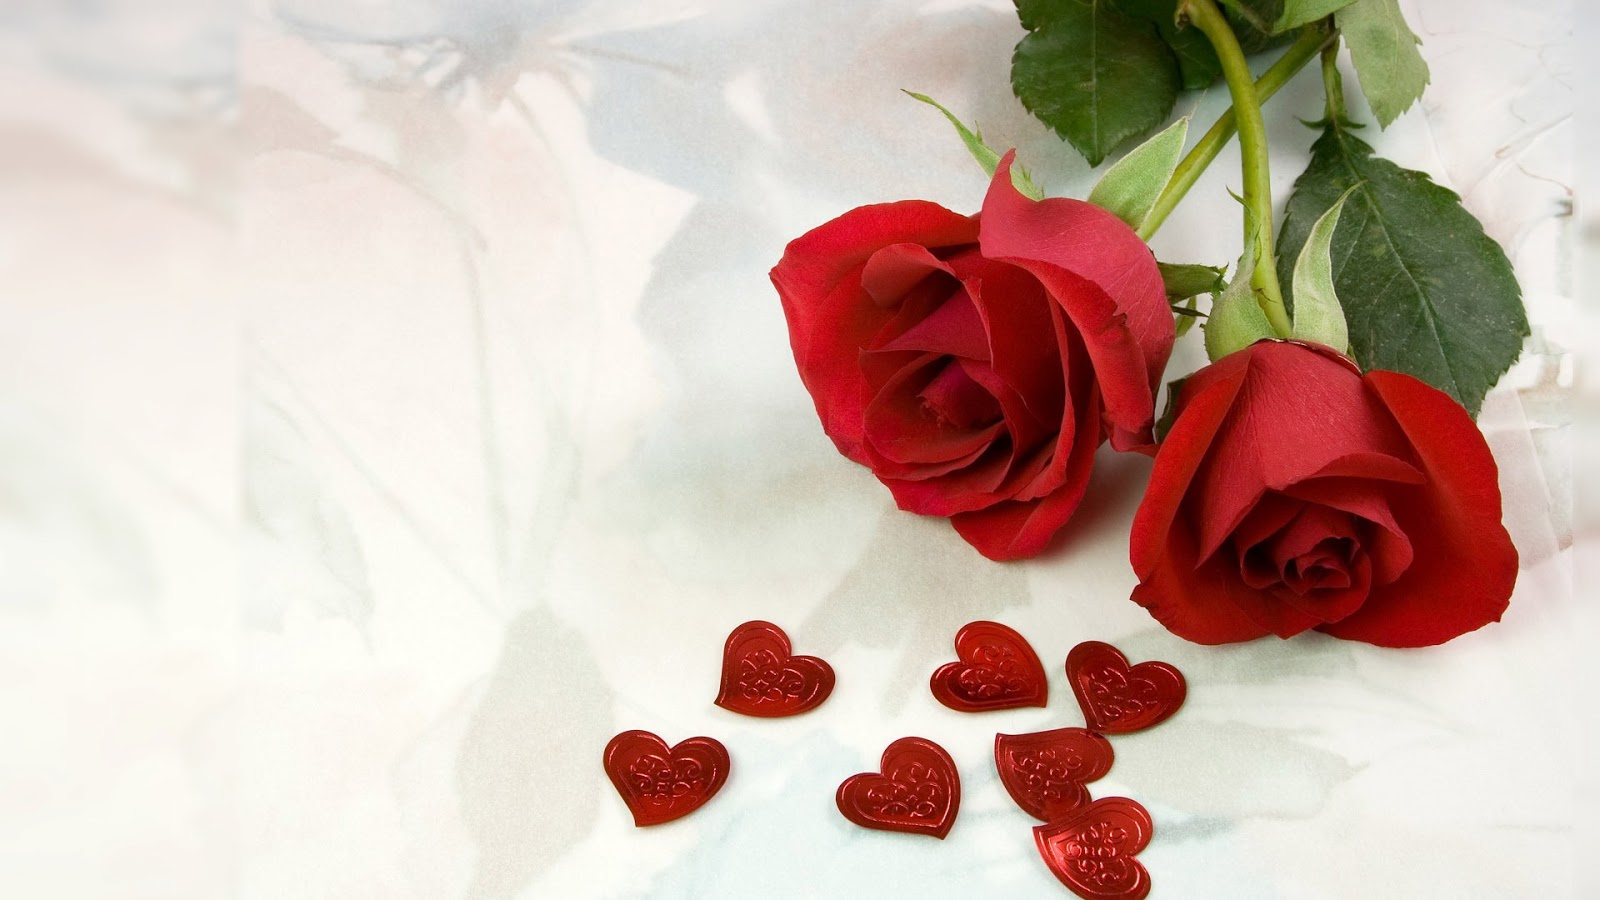 red roses, most popular rose, rose wallpapers, beautiful rose, red rose pictures